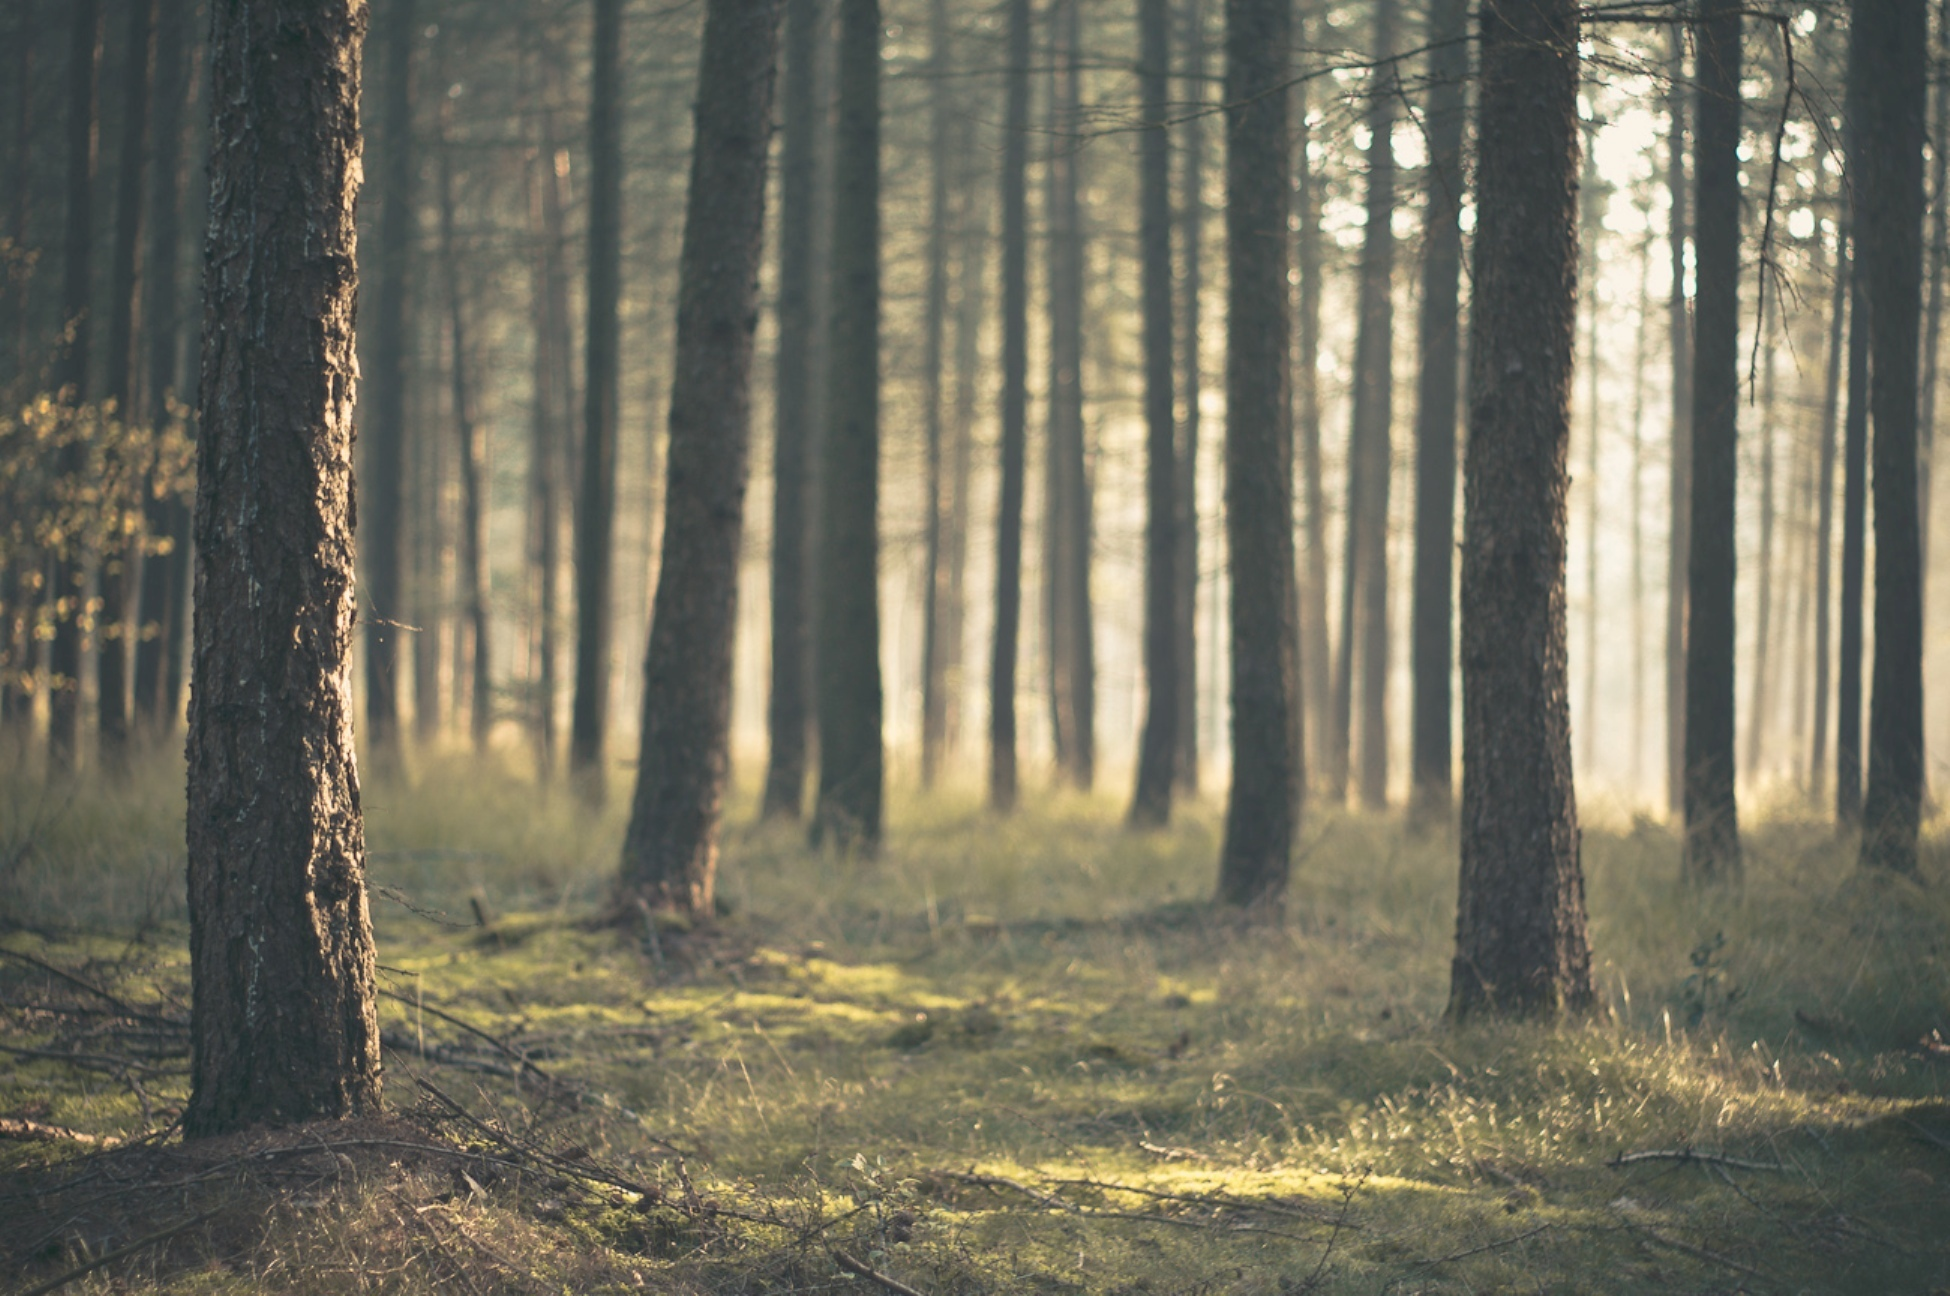 Pine Forest Free Download HD Wallpapers 14778 - Amazing Wallpaperz